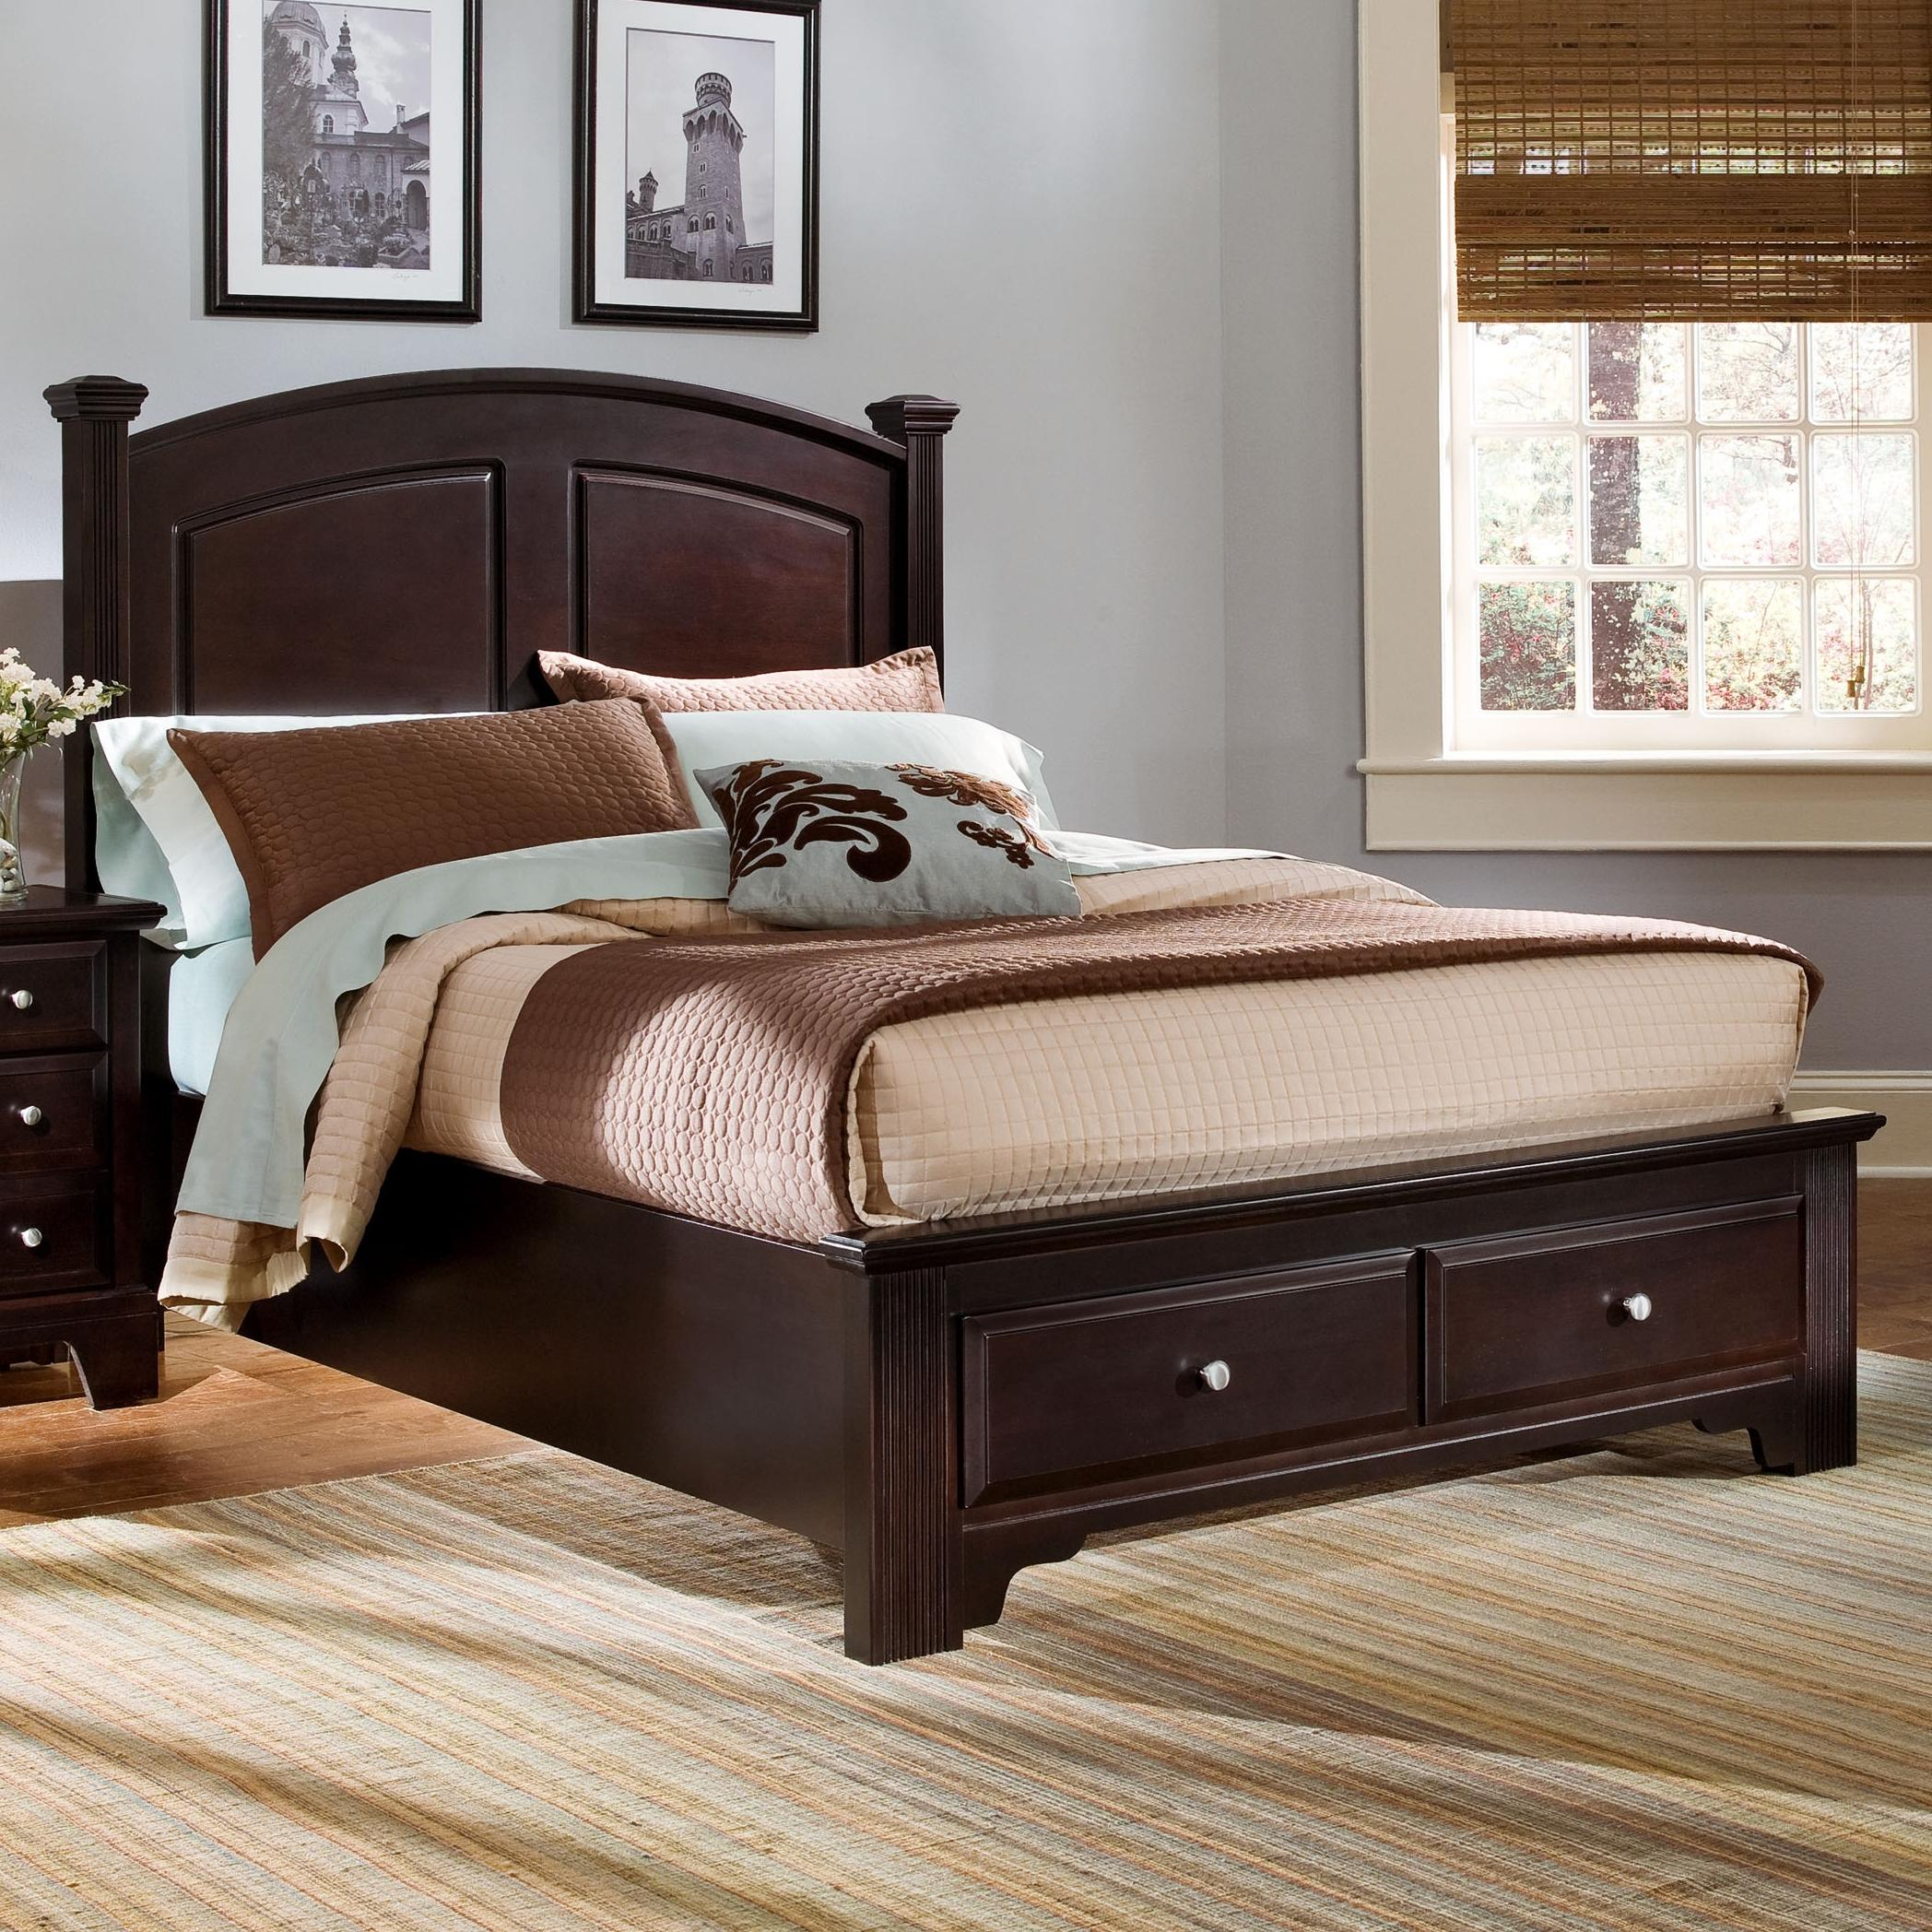 Full Panel Storage Bed By Vaughan Bassett Wolf And Gardiner Wolf Furniture